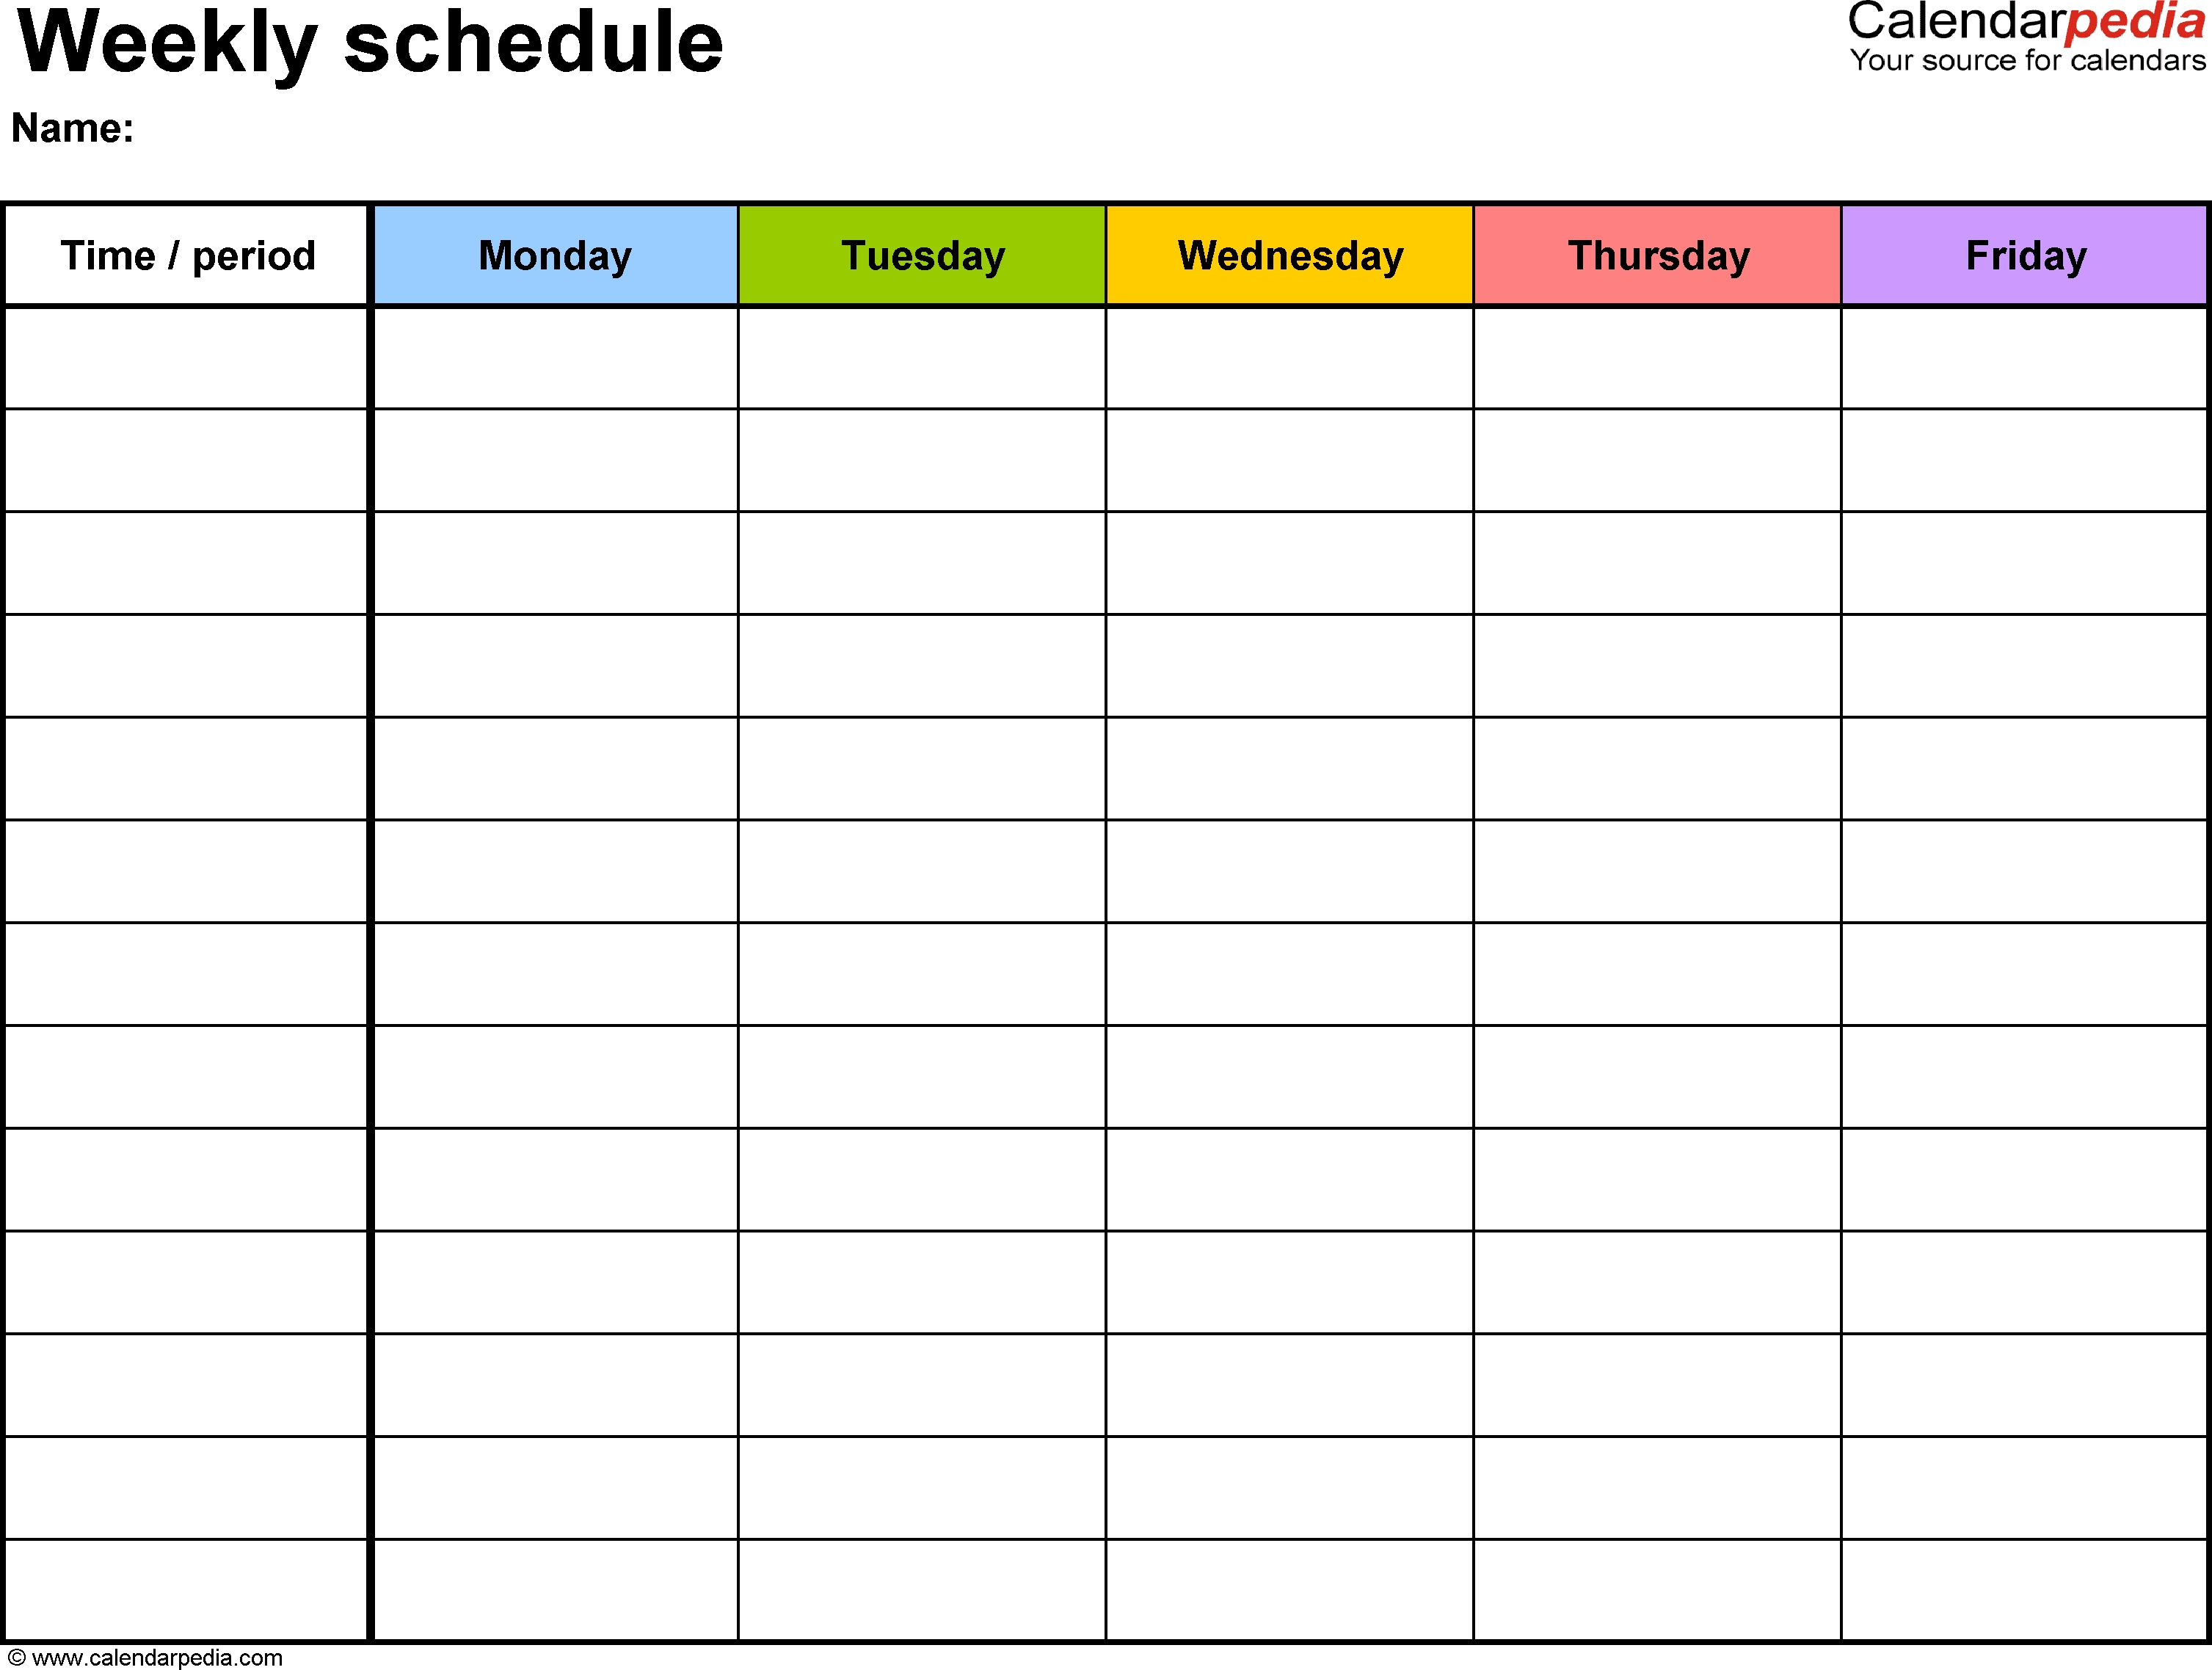 Free Weekly Schedule Templates For Word - 18 Templates with regard to 5 Day Week Calendar Printable